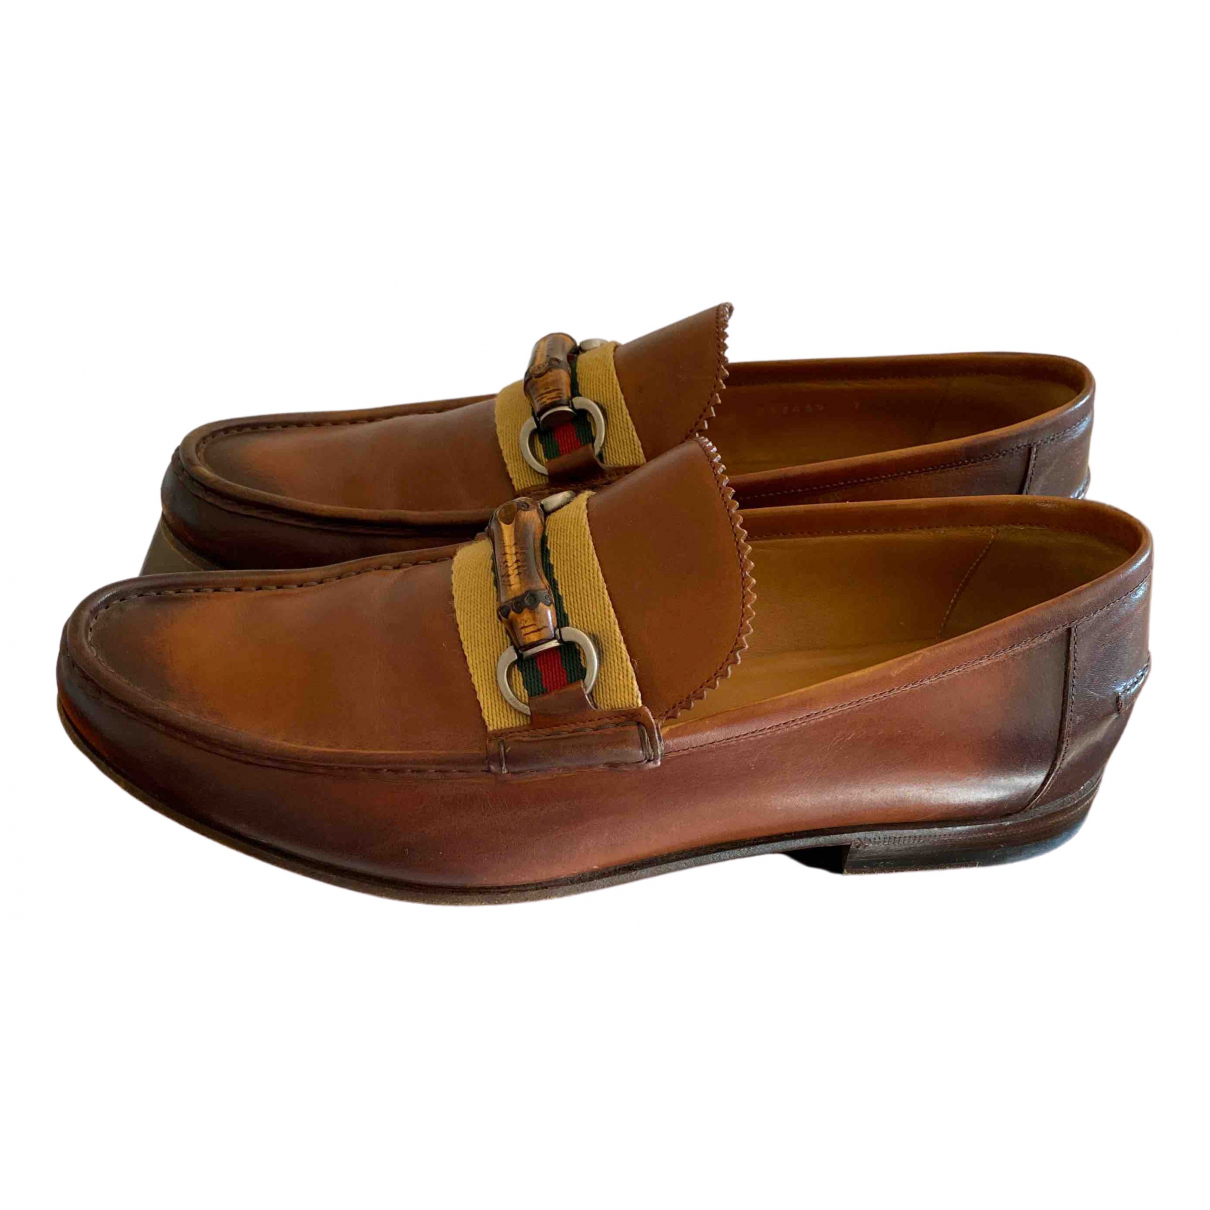 Gucci Brixton Brown Leather Flats for Men 7 UK